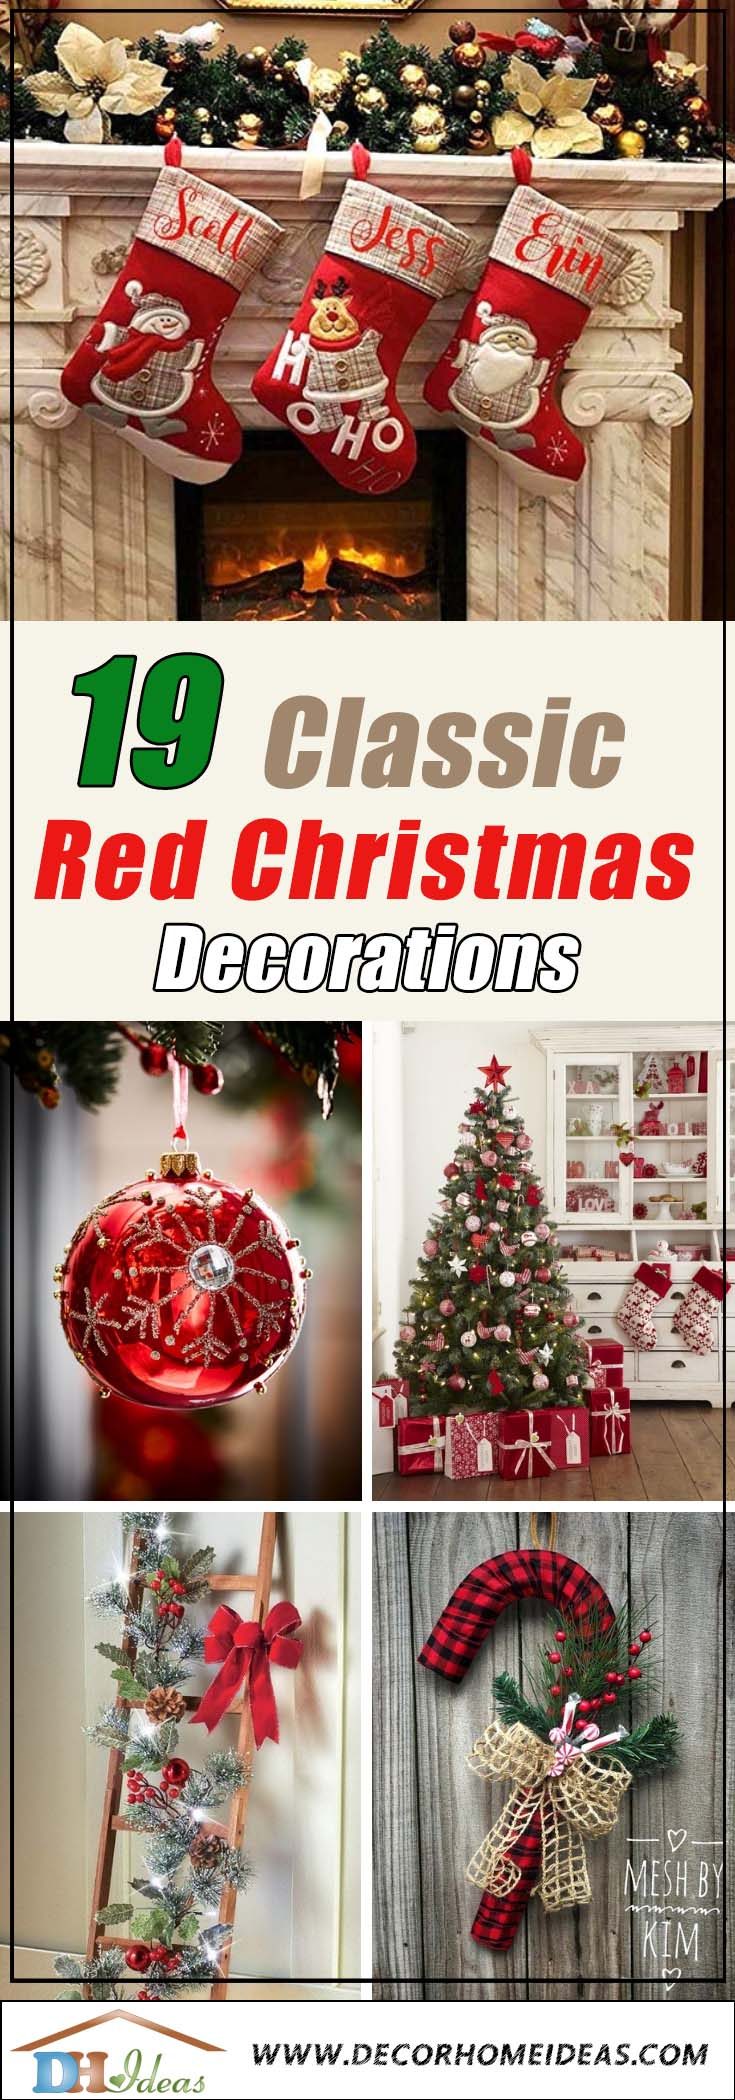 Best Red Christmas Decorations #Christmasdecor #Christmas #red #reddecor #decorhomeideas